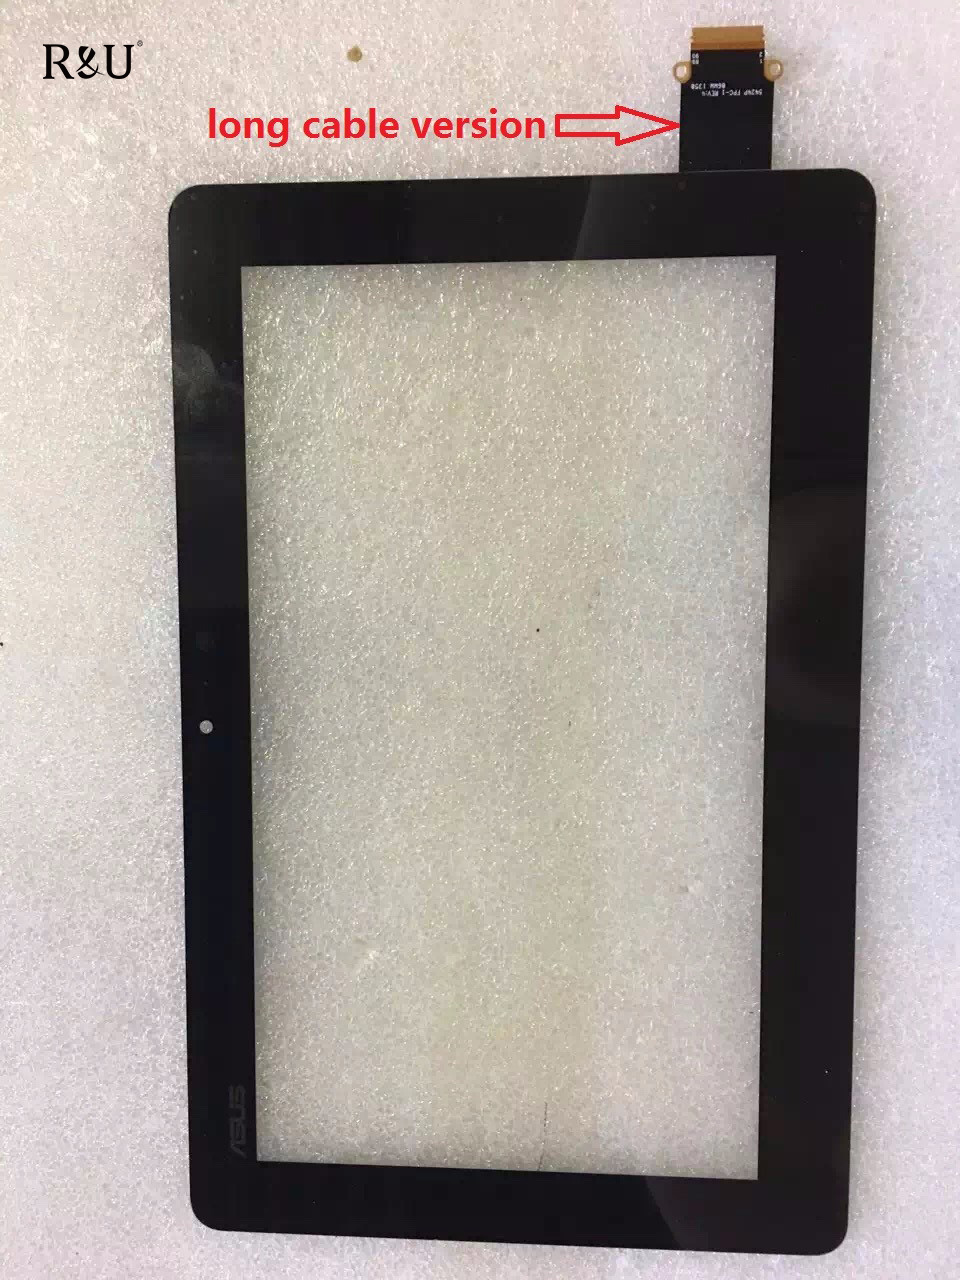 R&U test good 11.6 Touch Screen Digitizer outside screen 5424P FPC-4 long cable version for ASUS TX201 TX201L notebook pc